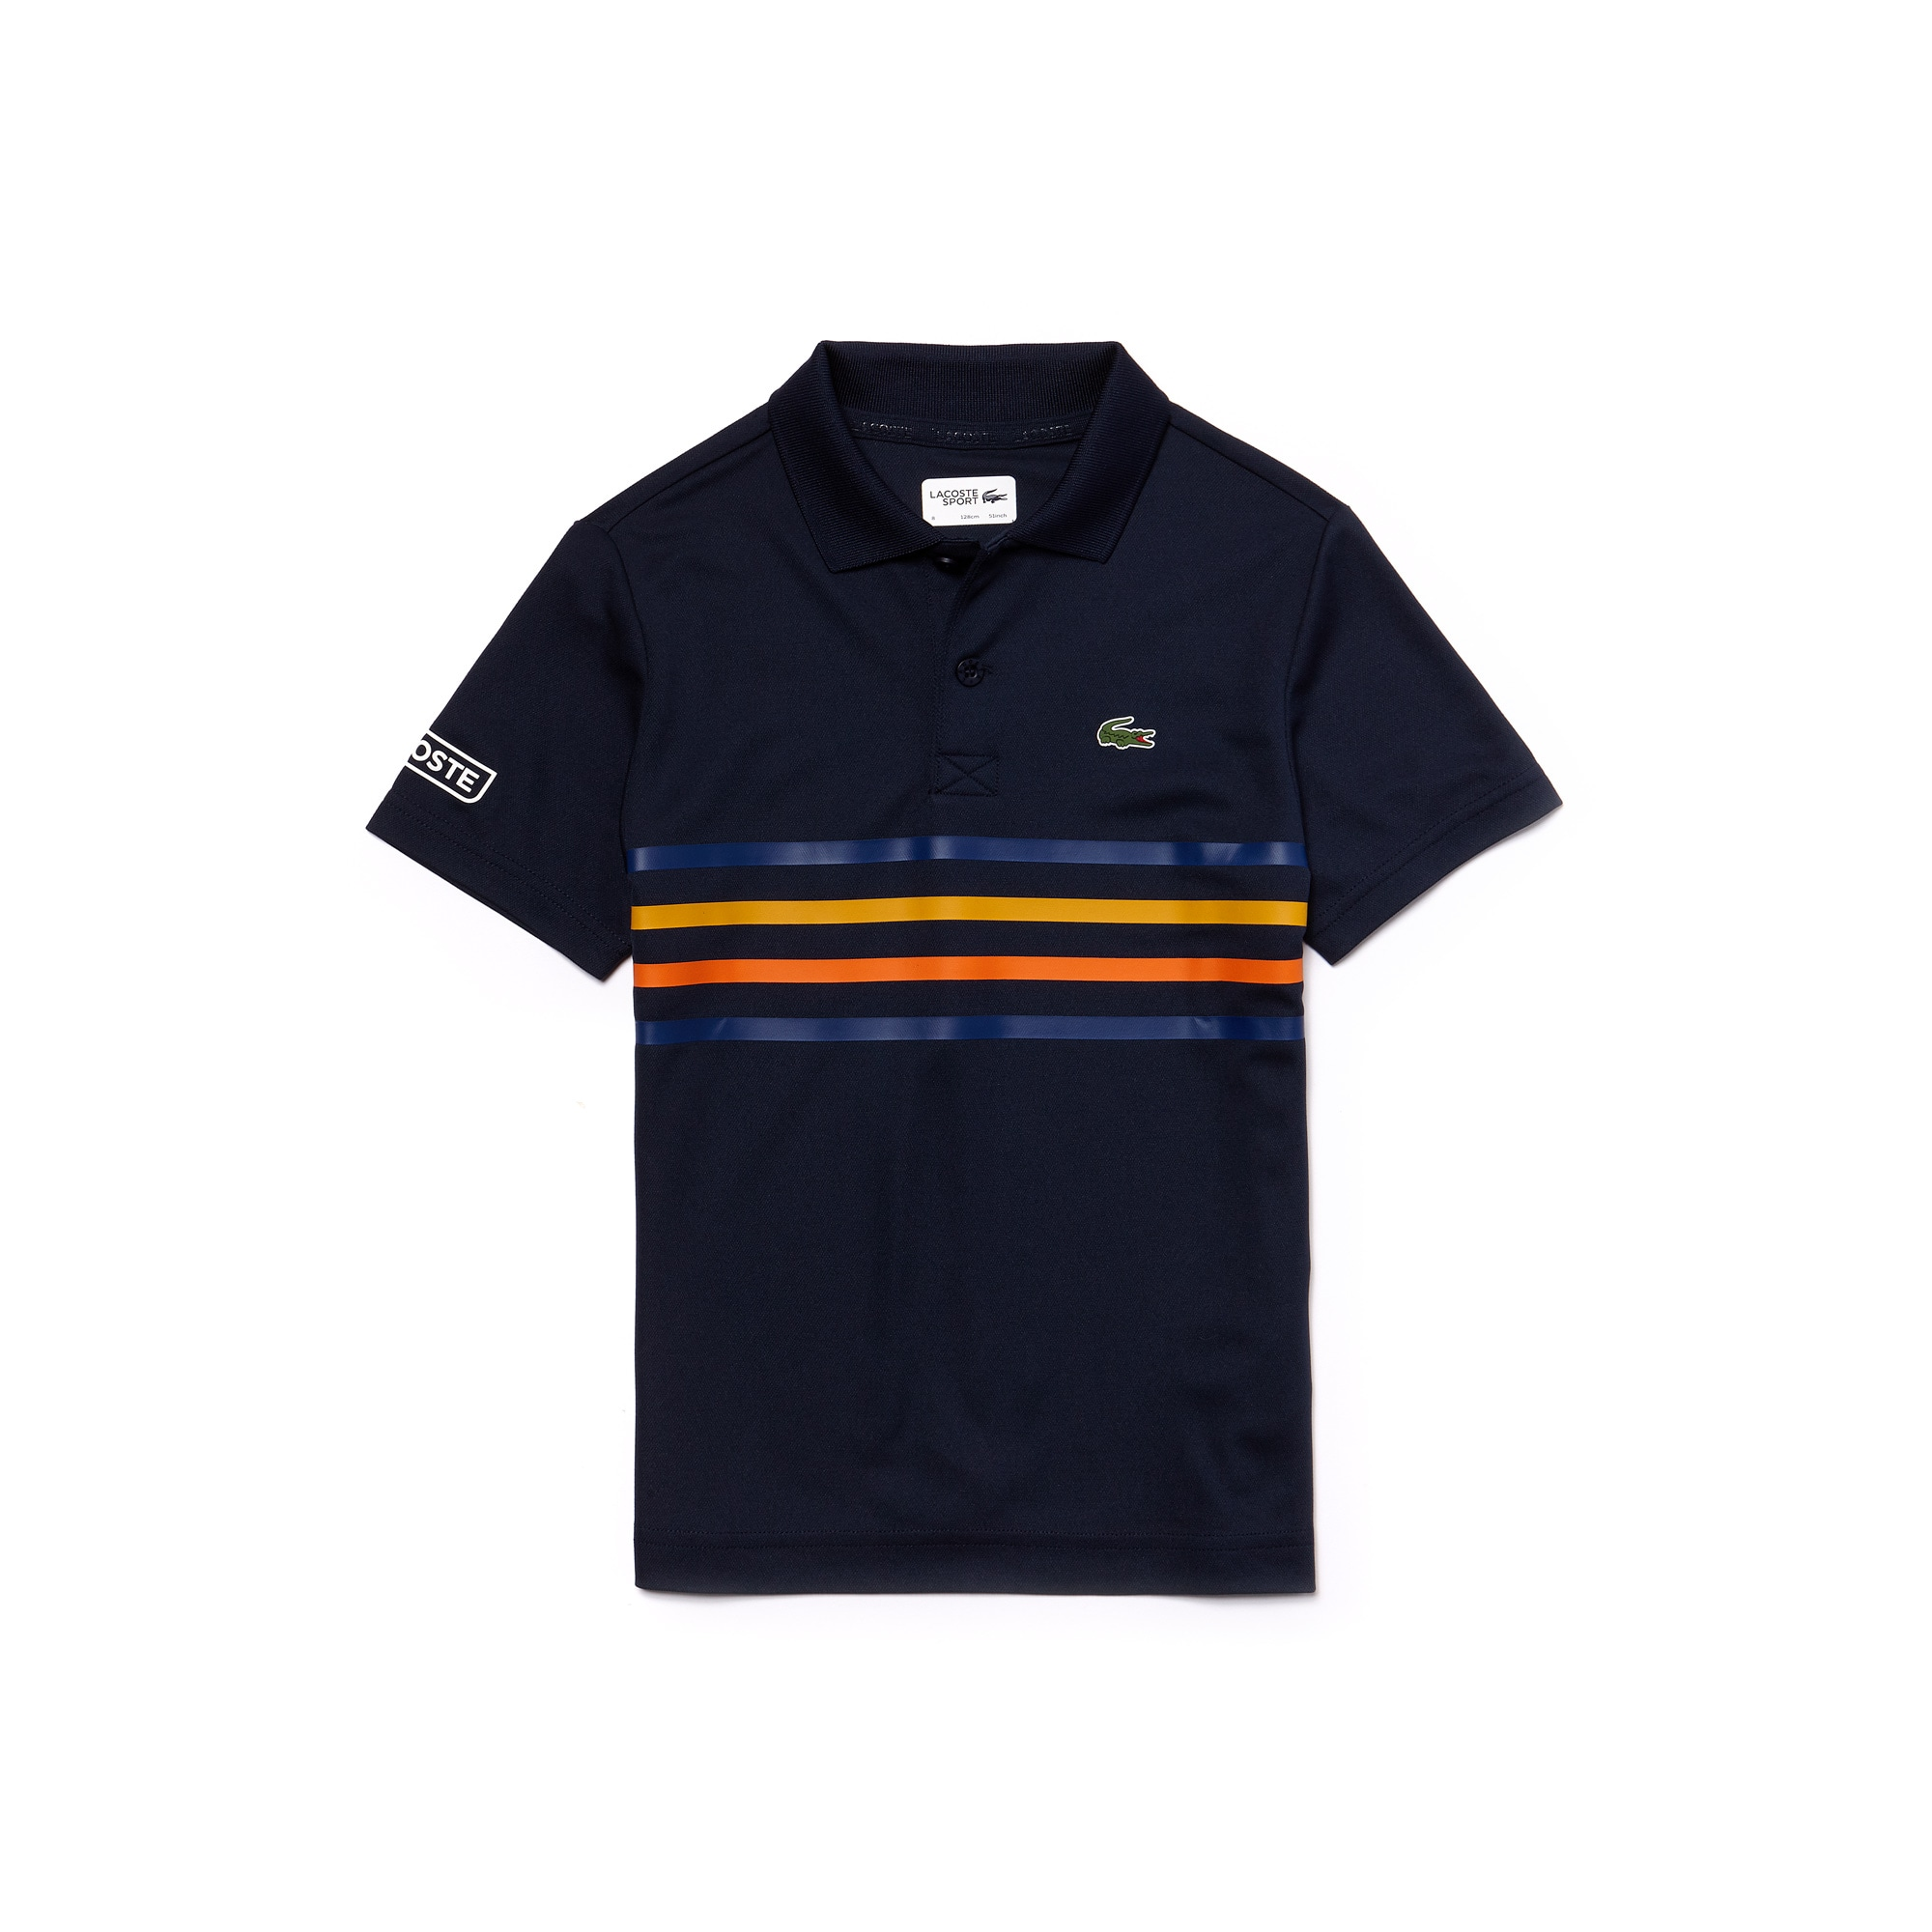 Boys' Lacoste SPORT Colored Bands Tech Piqué Tennis Polo